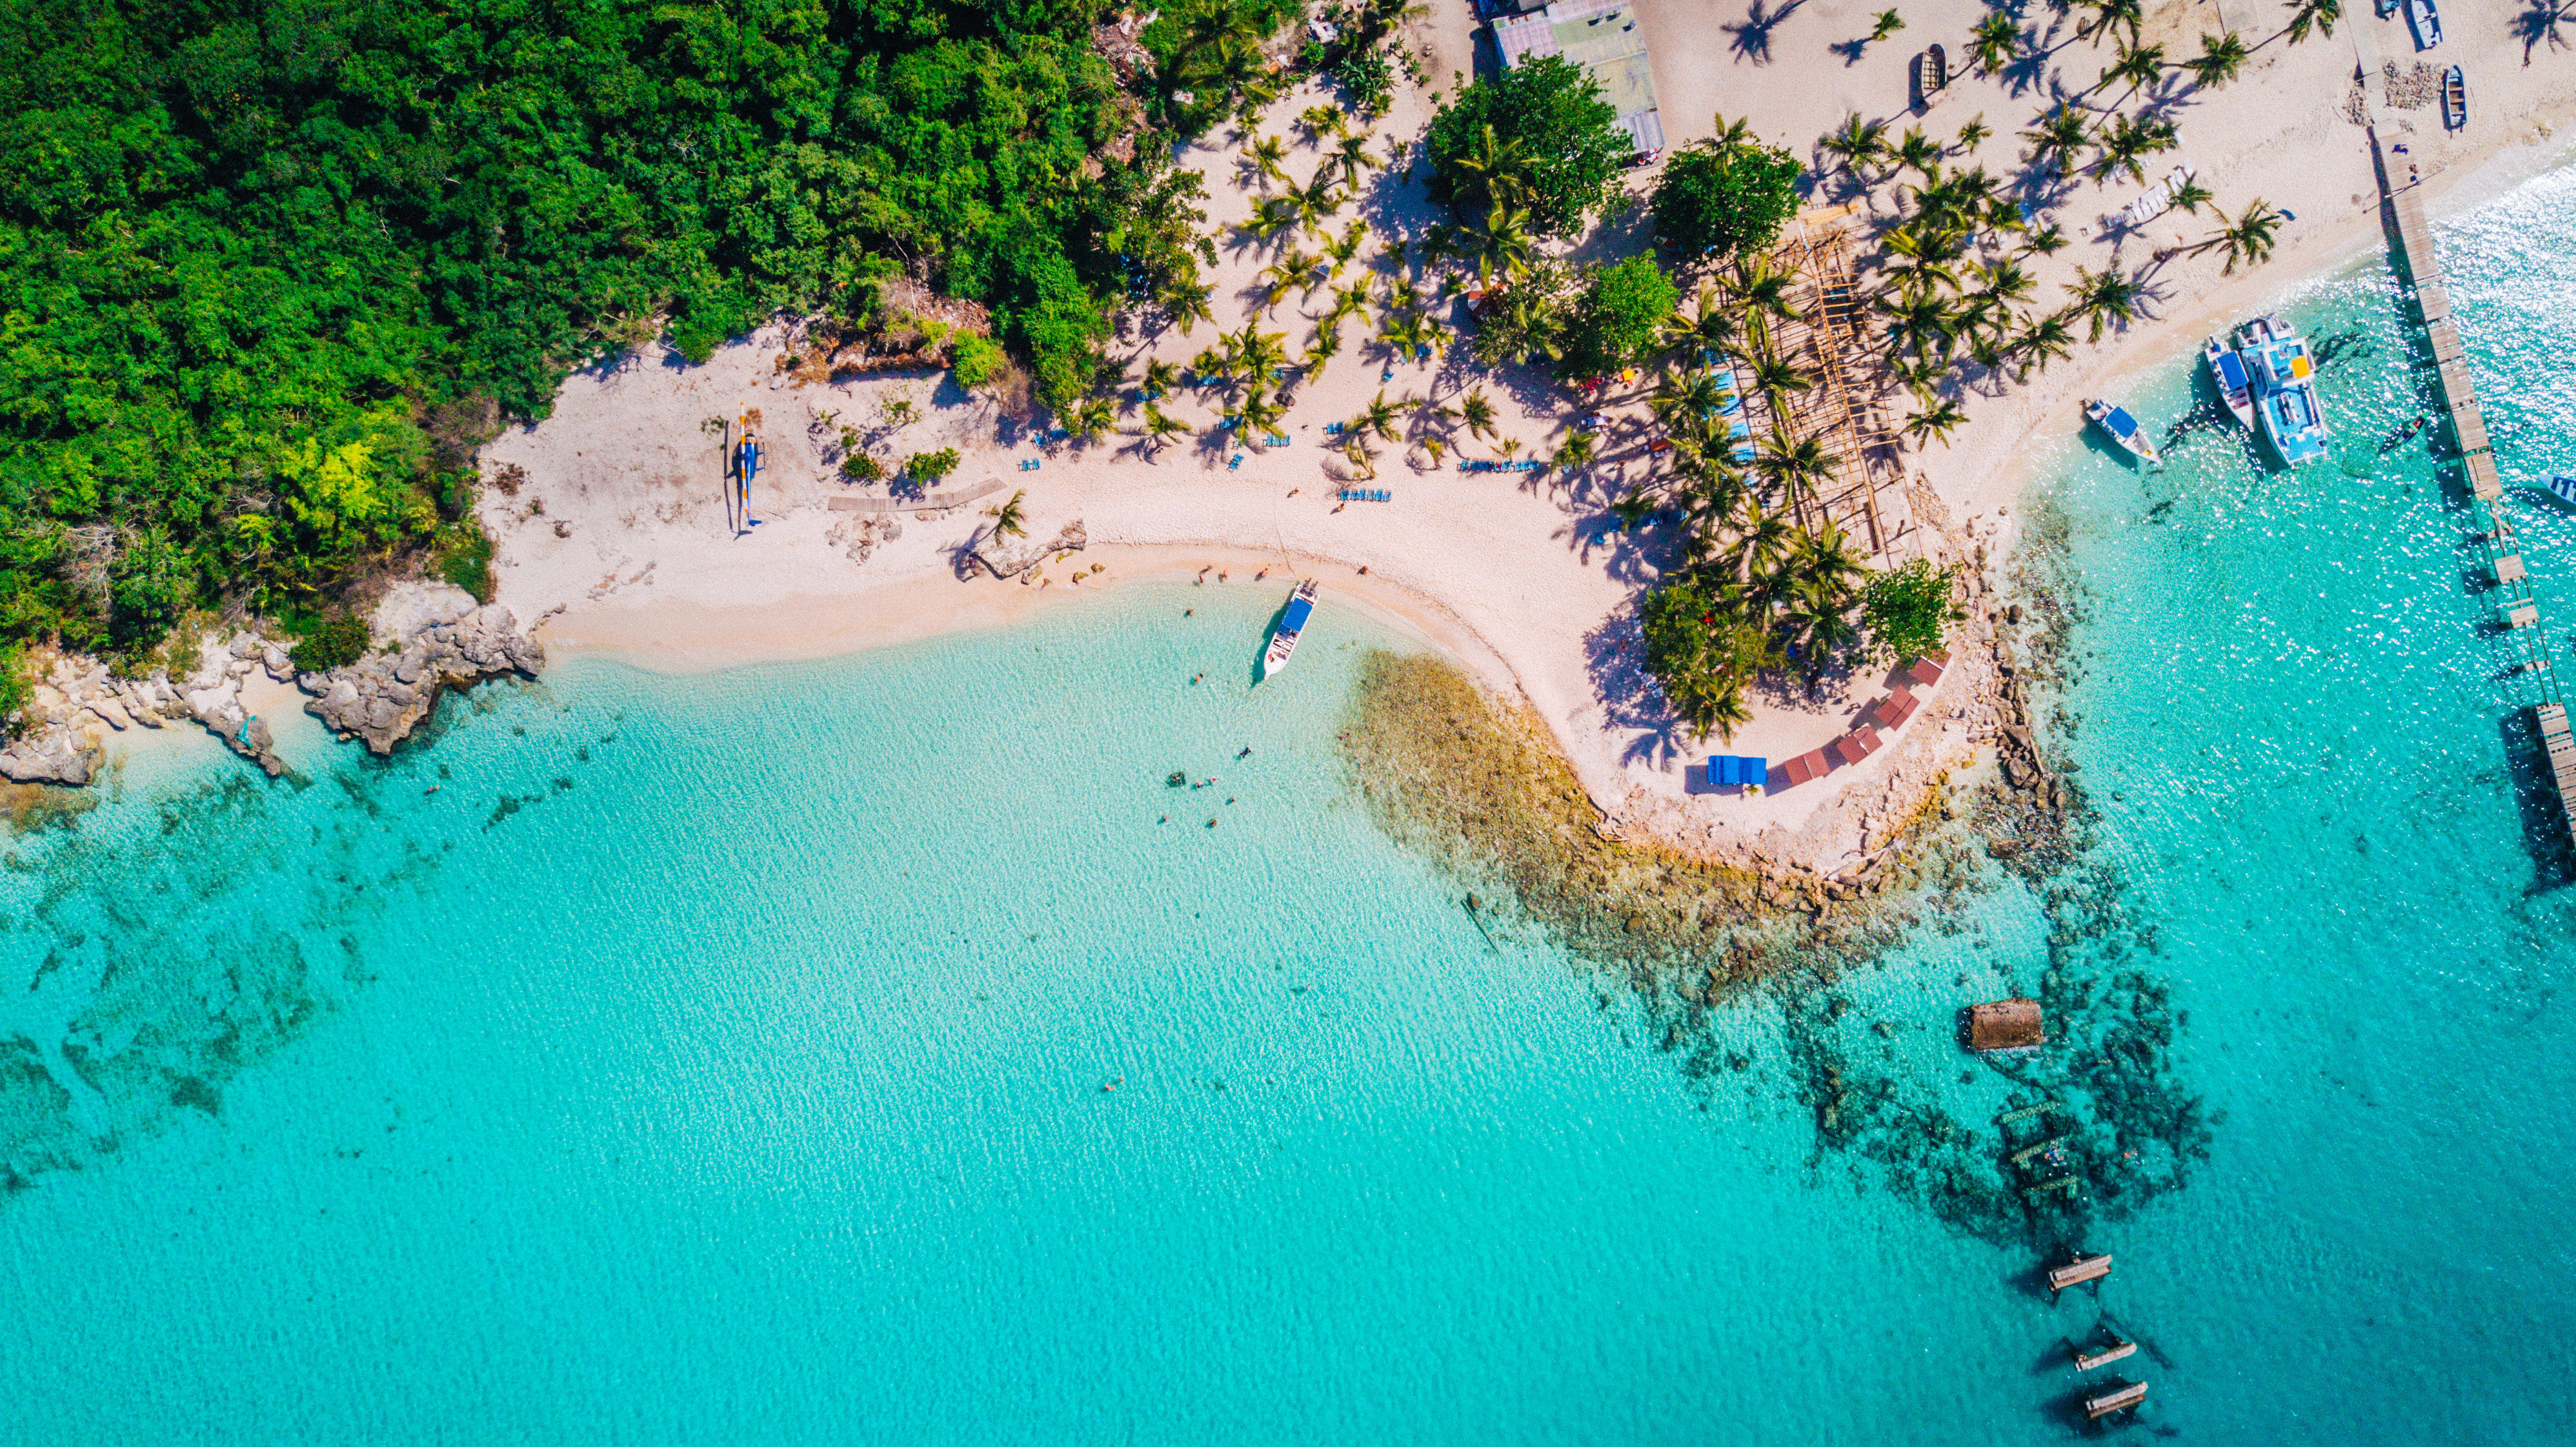 Aerial drone view of reef, trees and beach in a tropical landscape with boats in Dominican Republic.